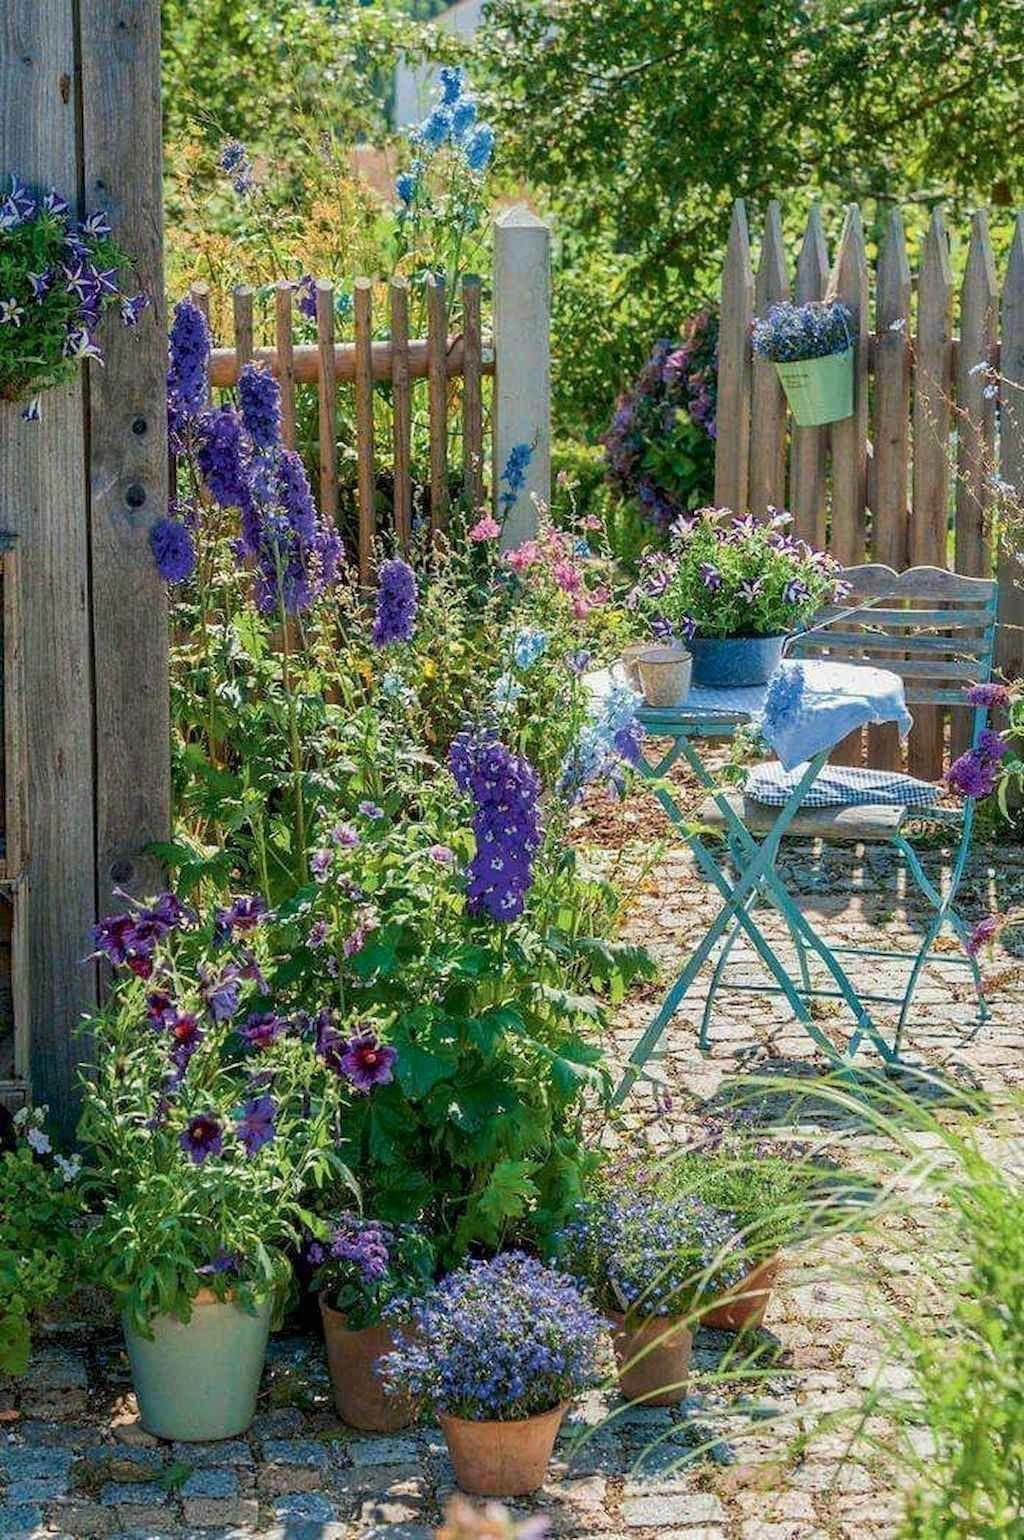 #smallGarden - Backyard - #Backyard #smallGarden - #kleiner Garten - Hinter ...